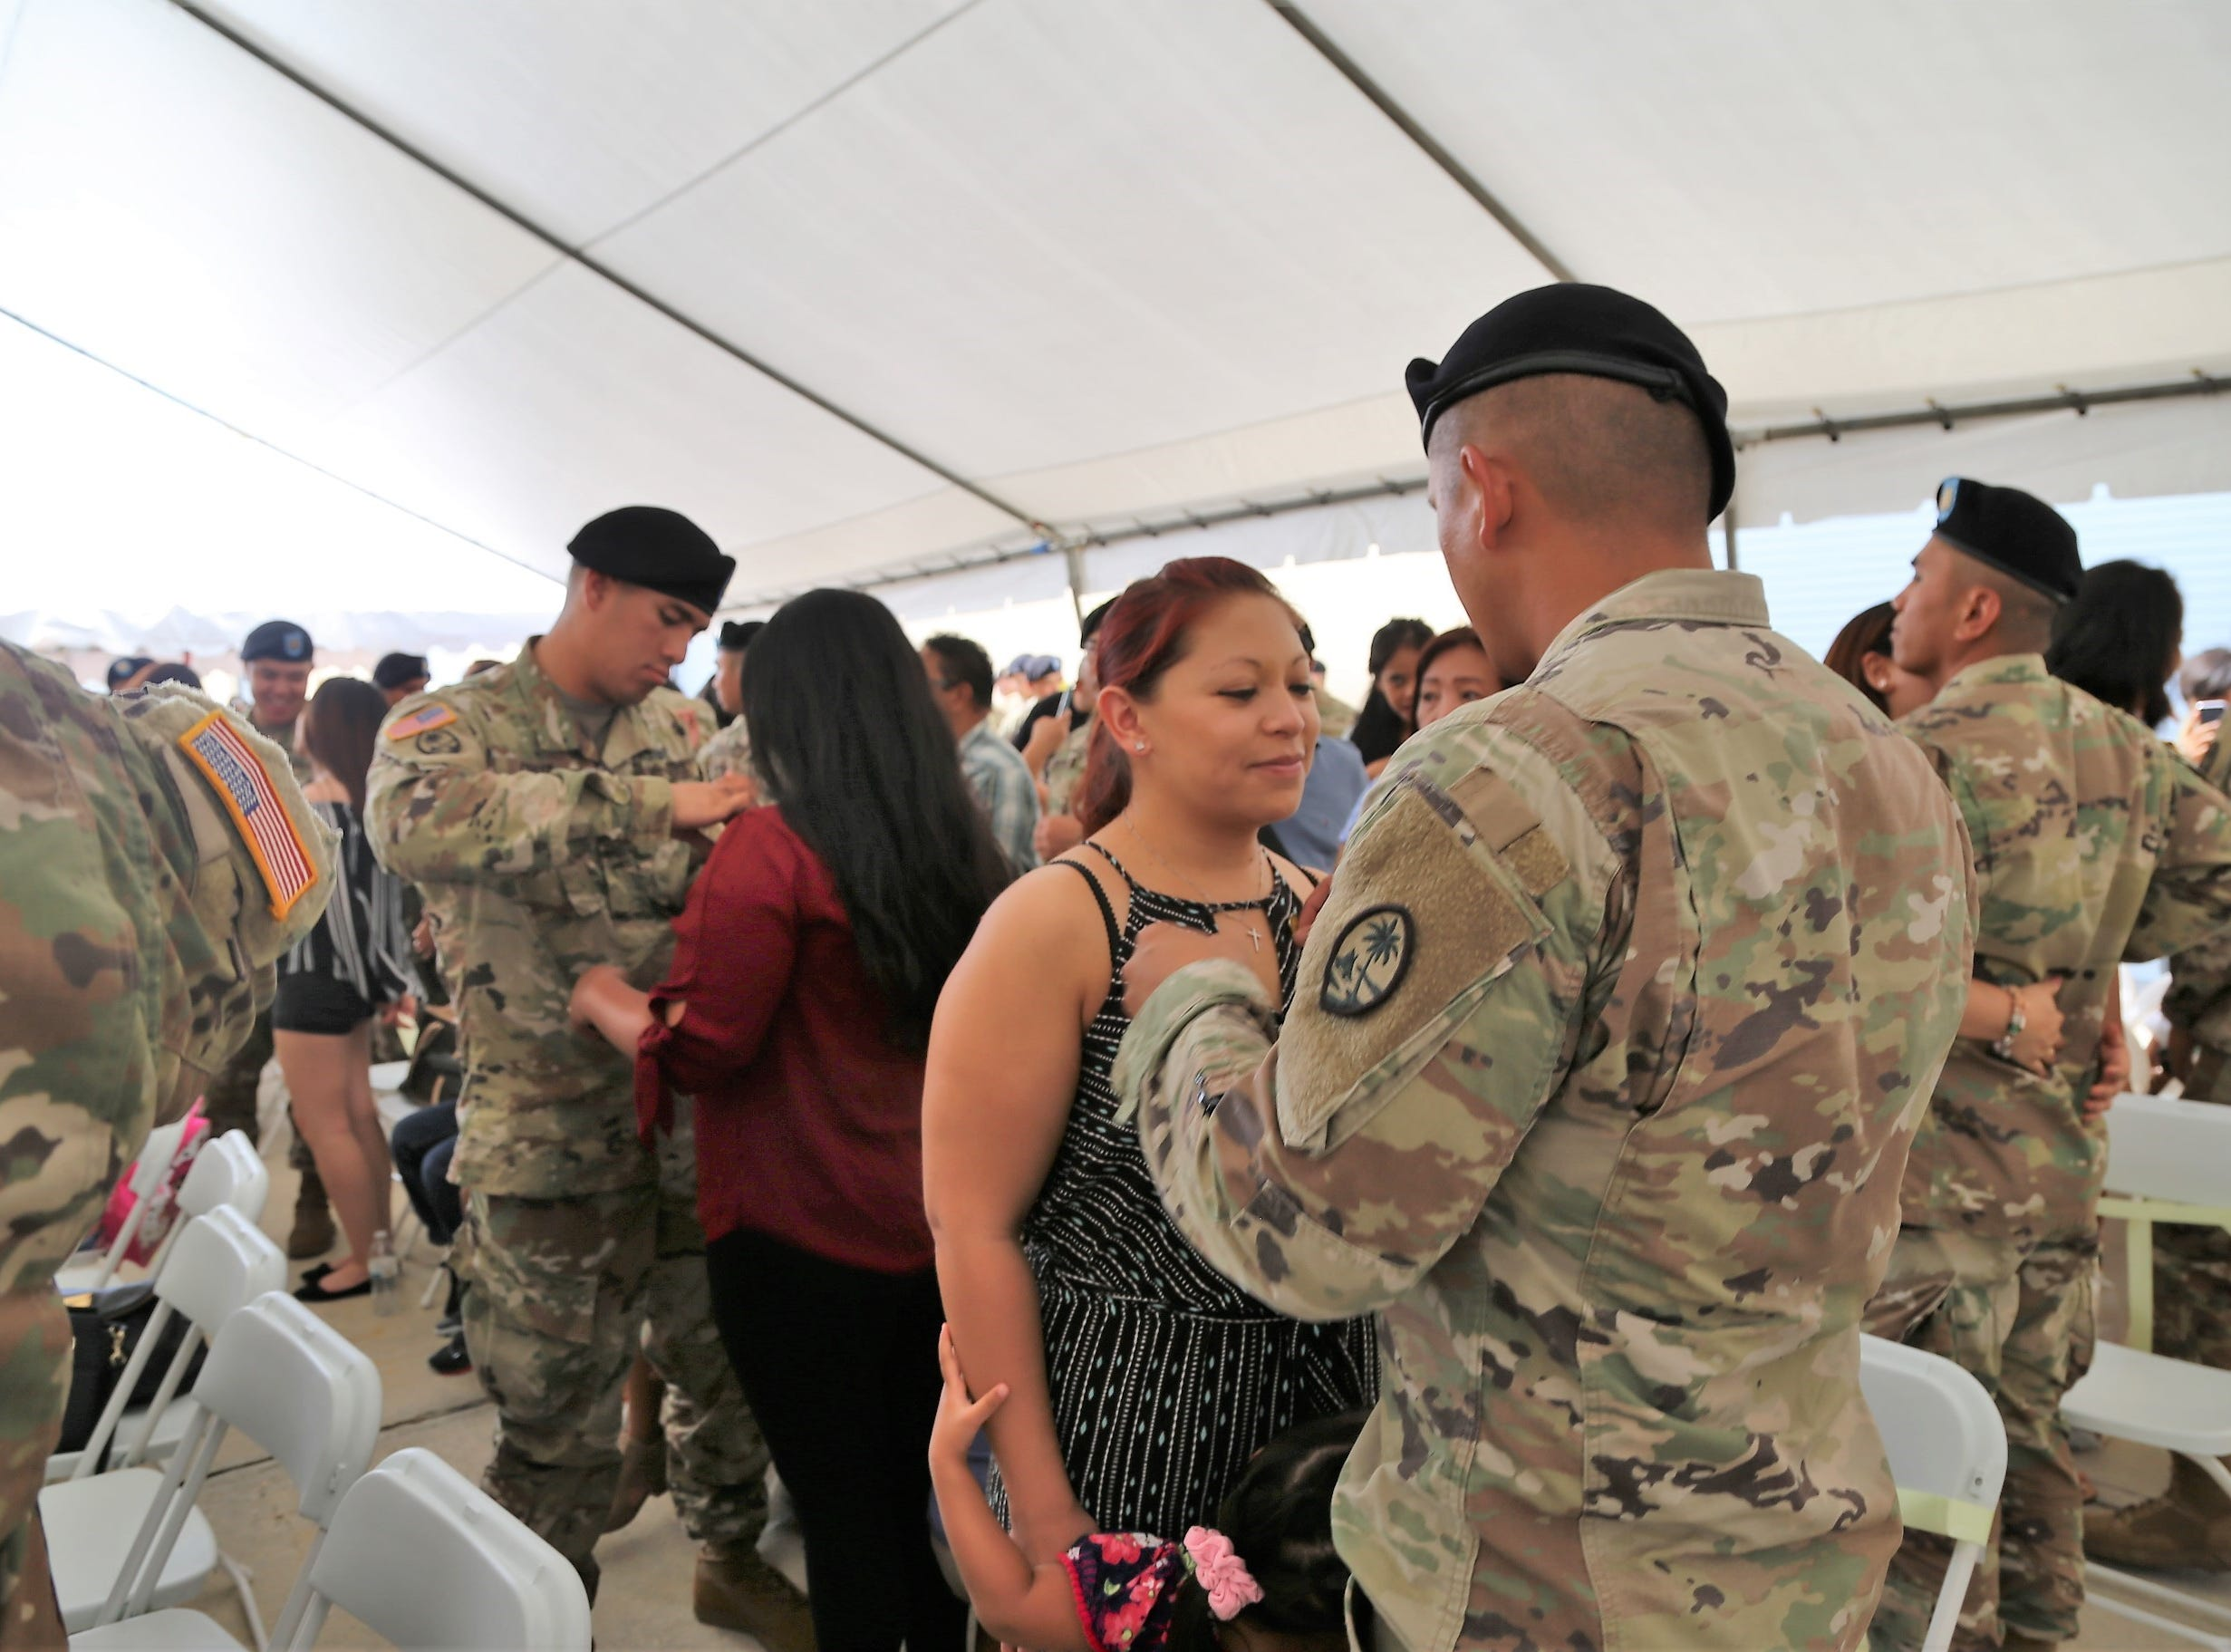 Soldiers, from the Guam Army National Guard's 1st-294th Infantry Regiment, pin a yellow ribbon on a loved one, during a Sendoff Ceremony on Saturday, May 11, at the Guard's Readiness Center in Barrigada. The soldiers are part of a deployment in support of a peacekeeping mission in the Sinai.